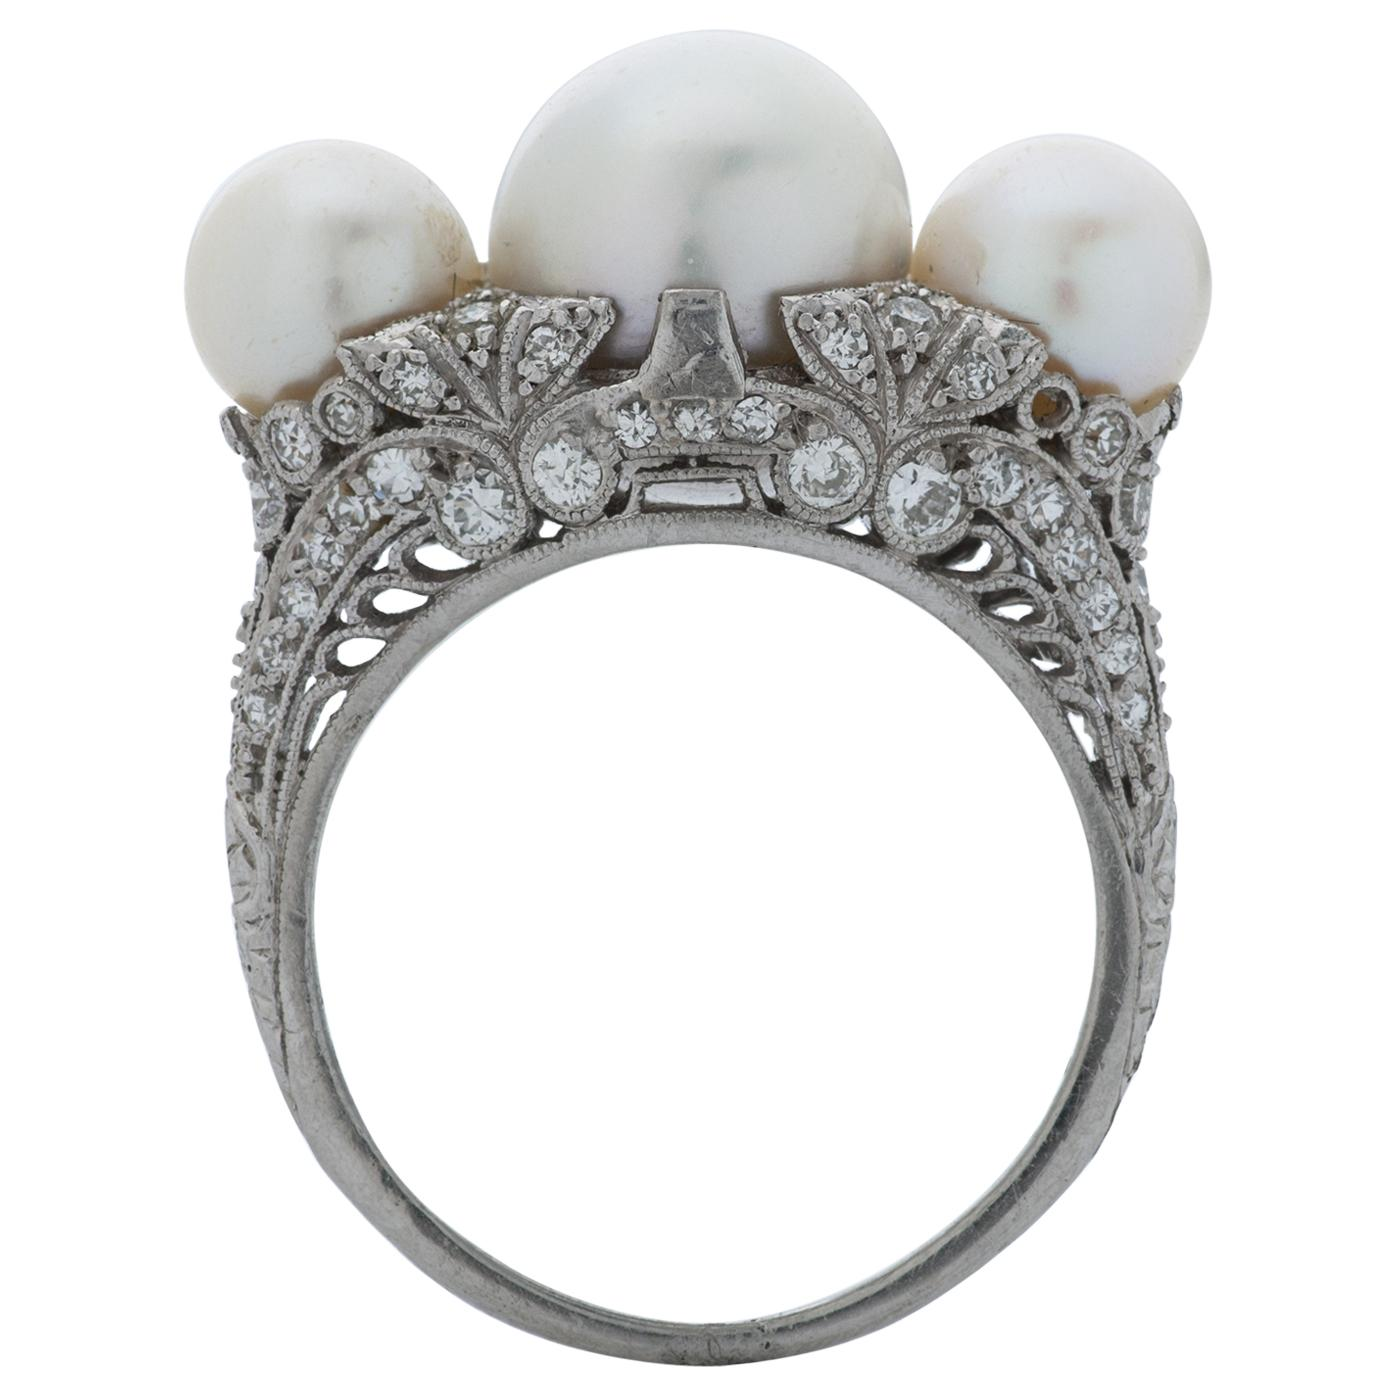 J.E. Caldwell & Co. Art Deco Round Cultured Pearl and Diamond Ring in Platinum